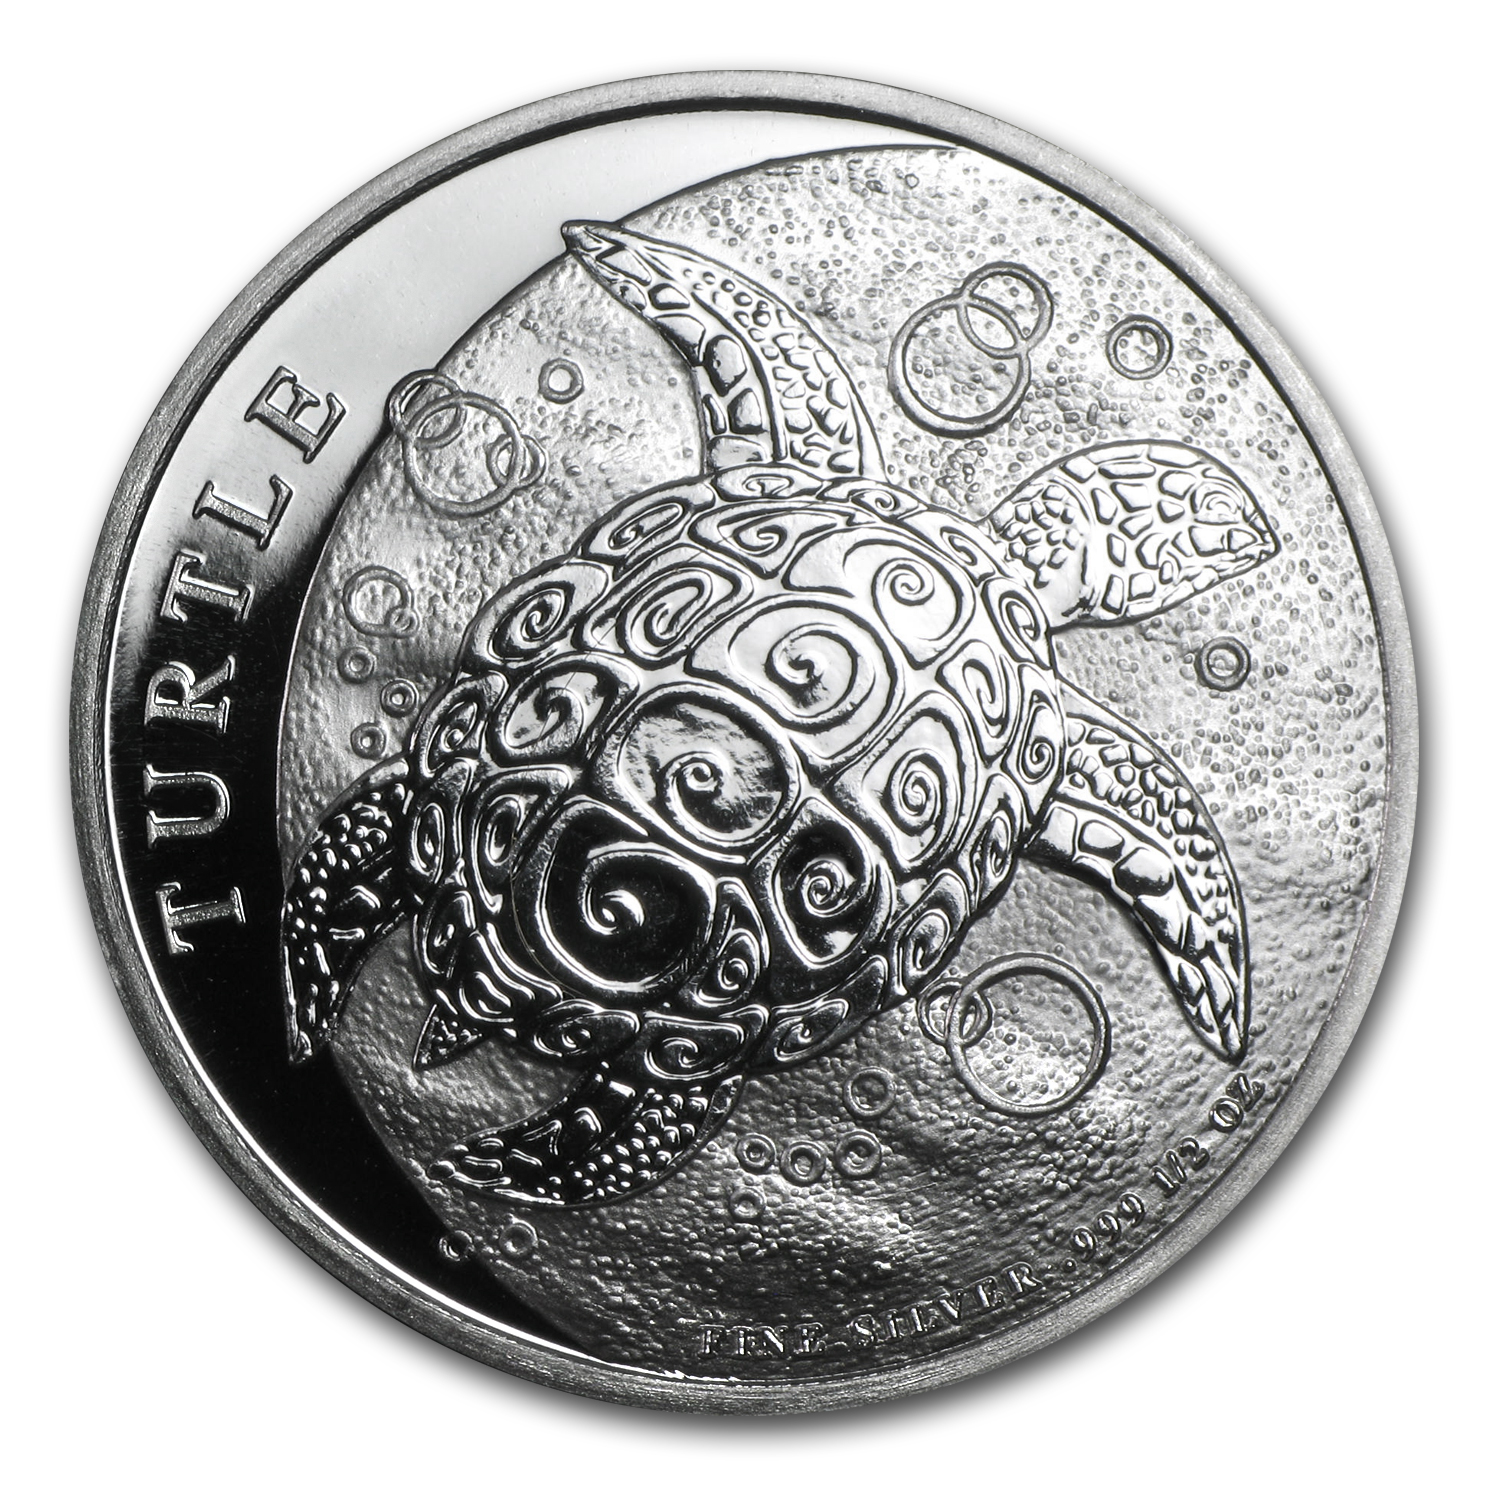 2014 1/2 oz Silver New Zealand Mint $1 Niue Hawksbill Turtle BU